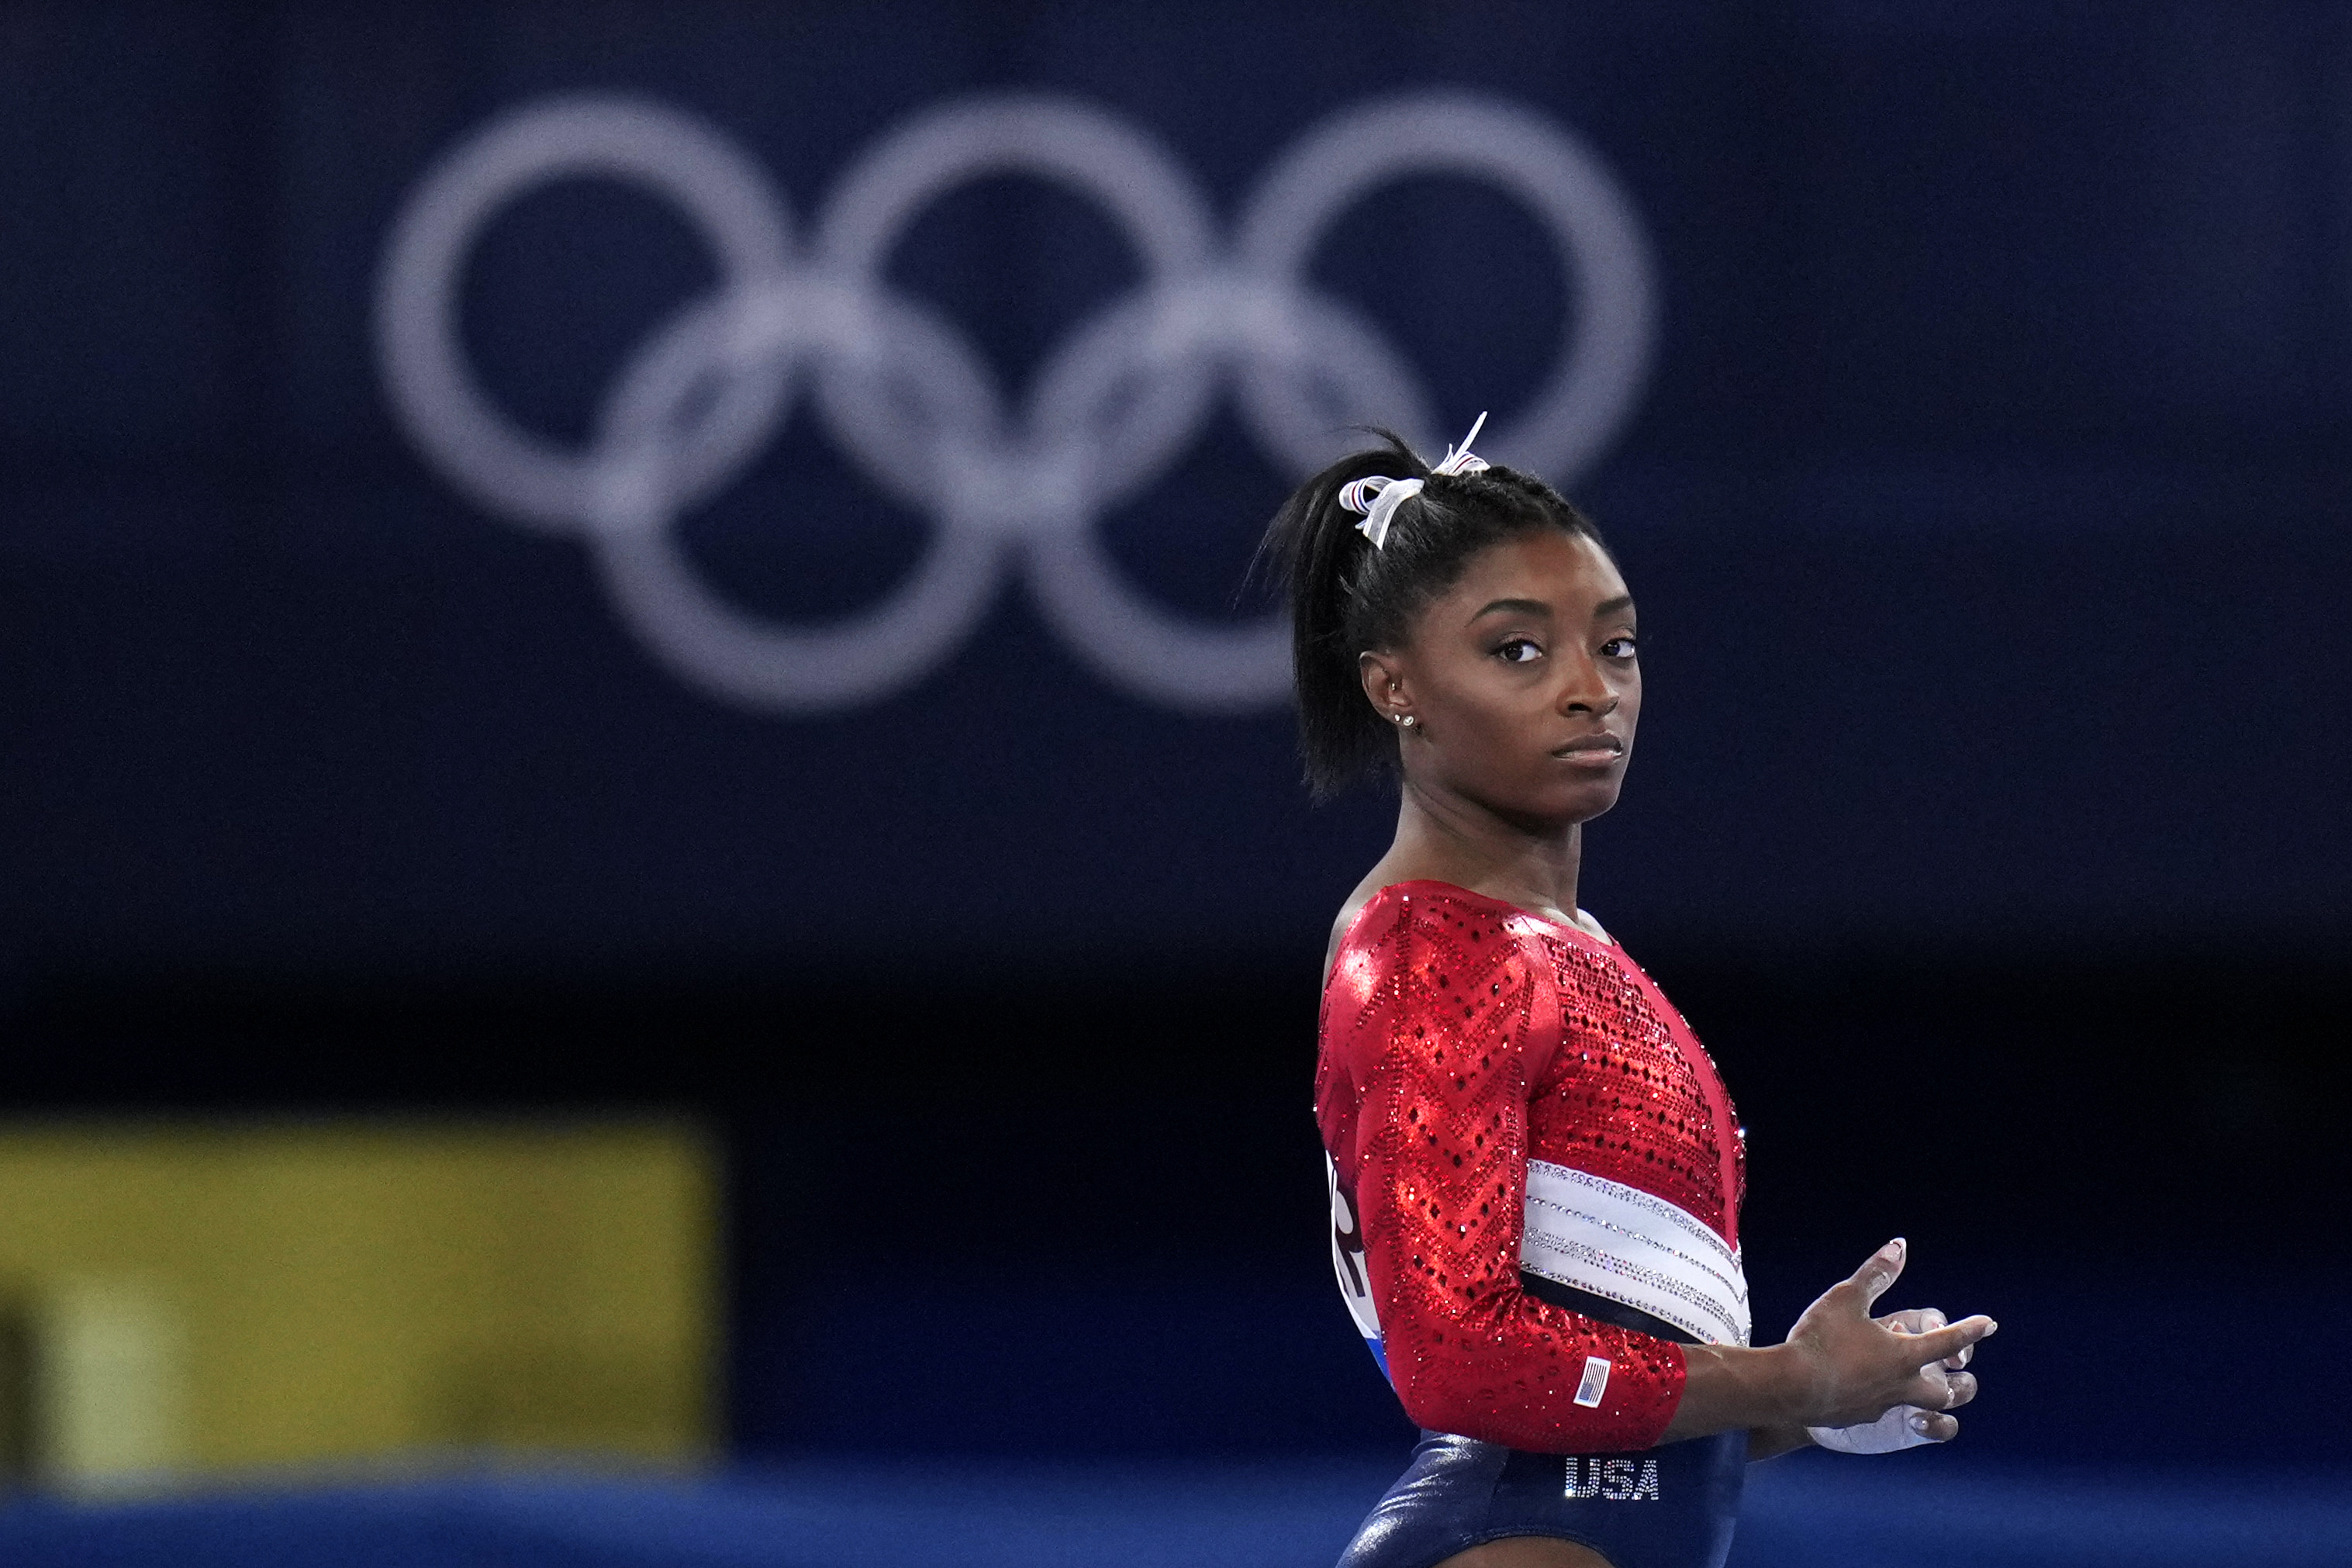 U.S. superstar gymnast Simone Biles waits to perform on the vault during the artistic gymnastics women's final at the 2020 Summer Olympics.